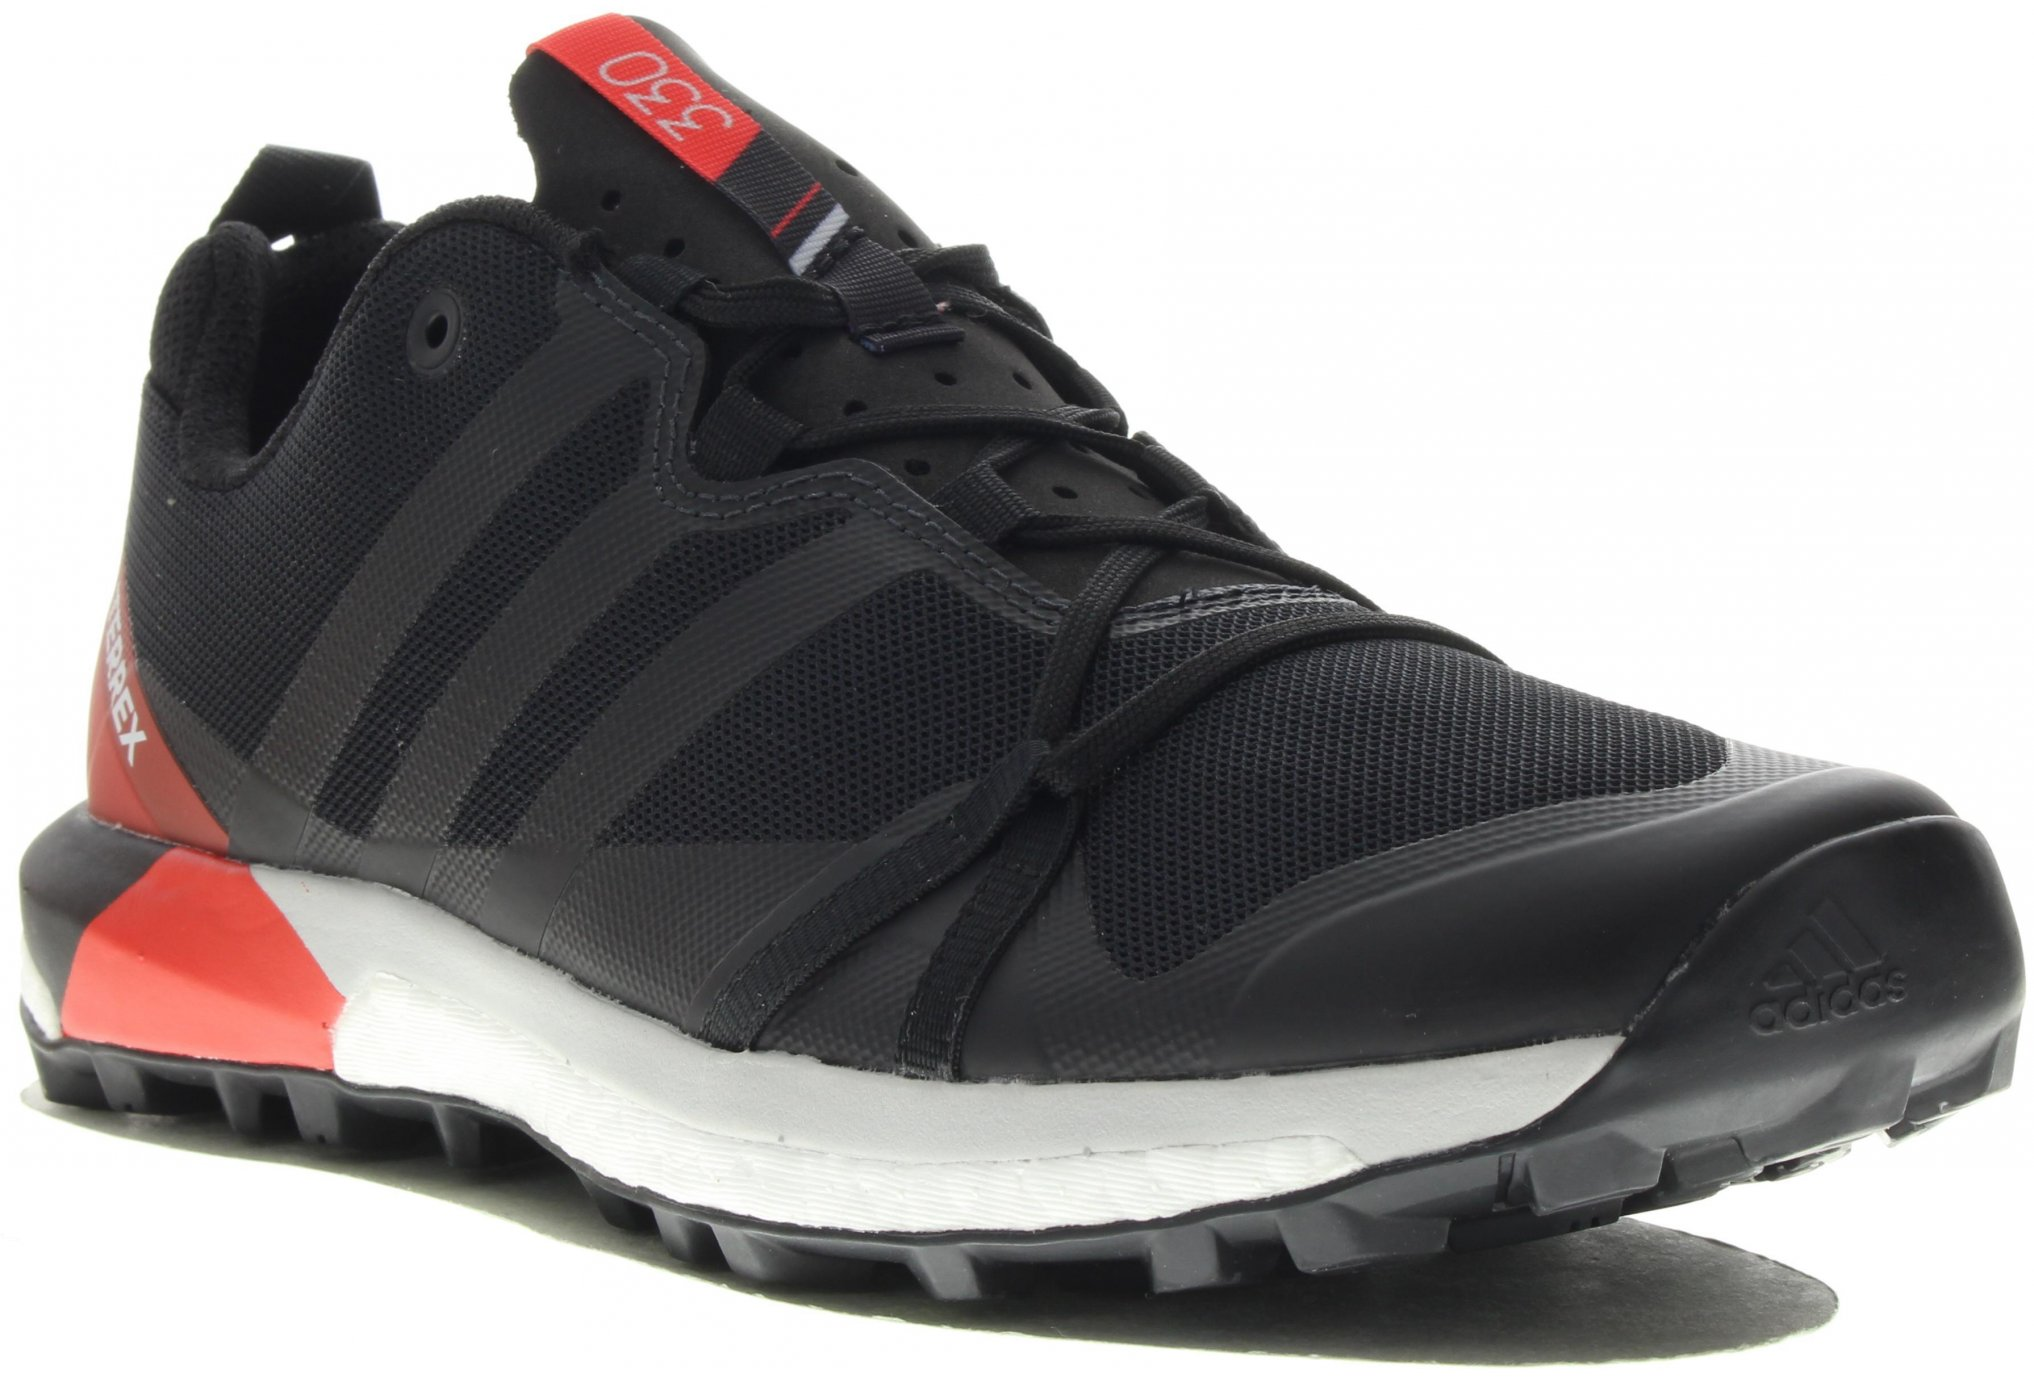 Chaussures Adidas Chaussures Trail Trail Adidas Chaussures Adidas Cqv6fz1wcx Trail Trail Chaussures Cqv6fz1wcx Cqv6fz1wcx Adidas QCrdxBoWe